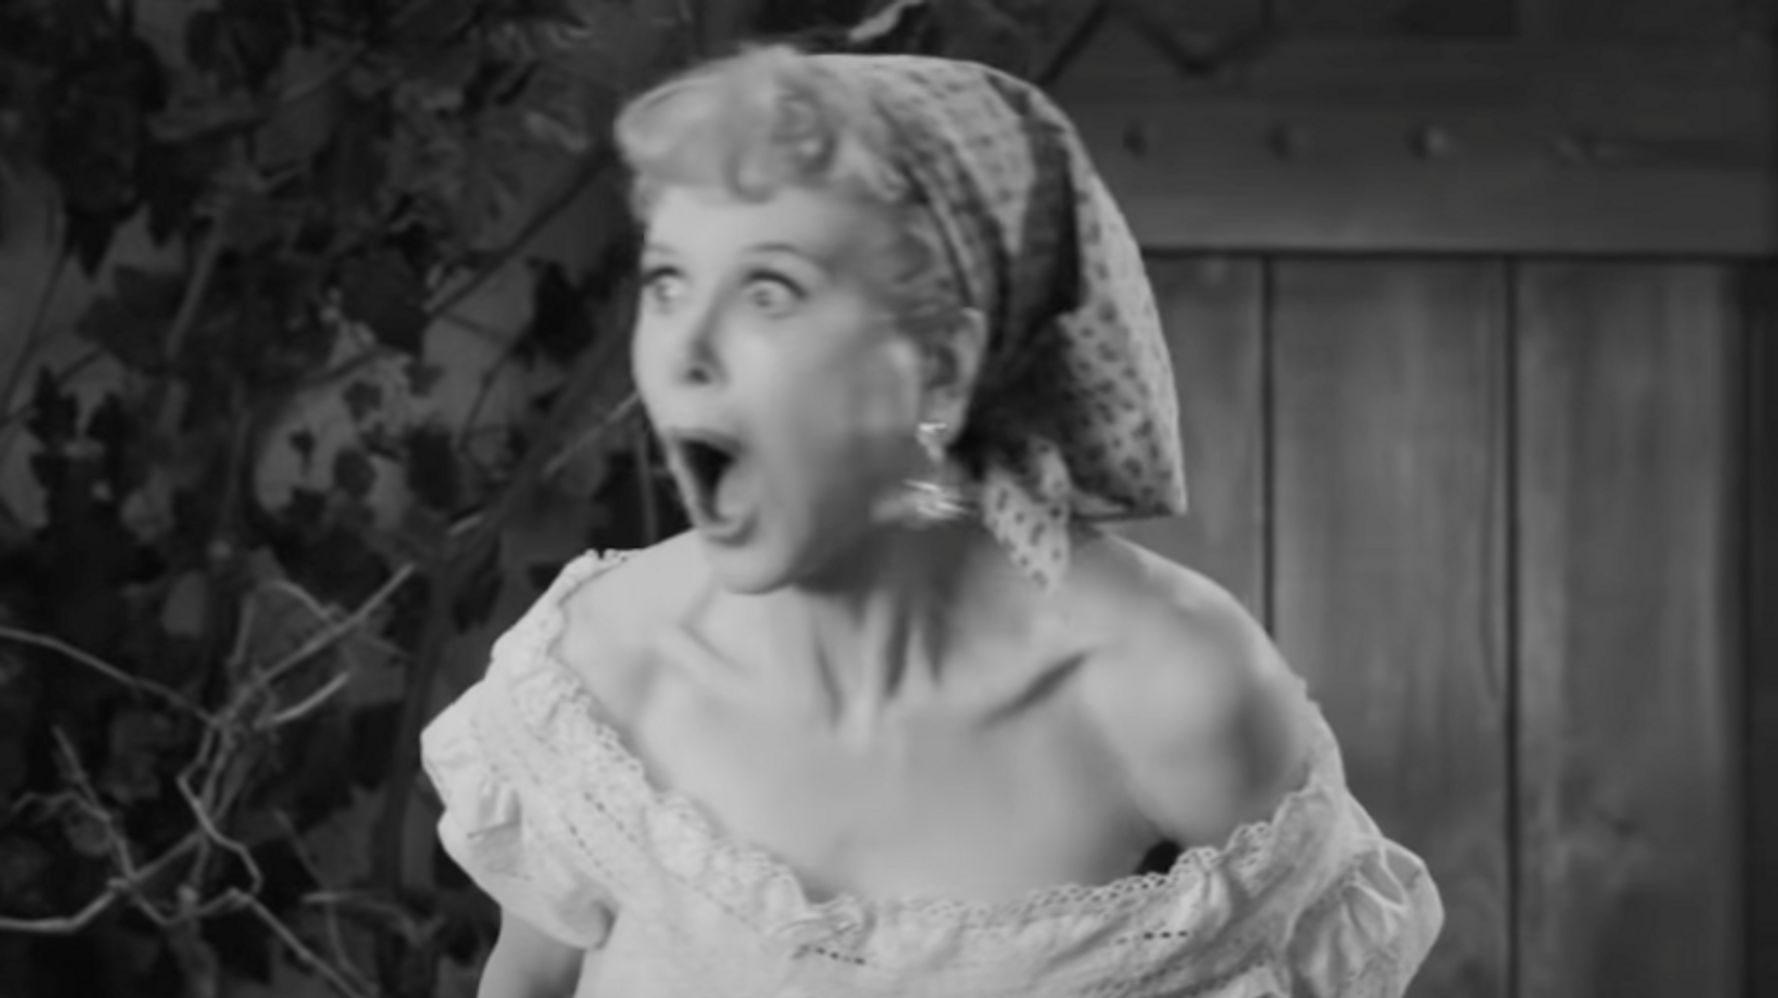 Nicole Kidman's Lucille Ball Isn't Ready For Her Closeup In 'Being The Ricardos' Teaser